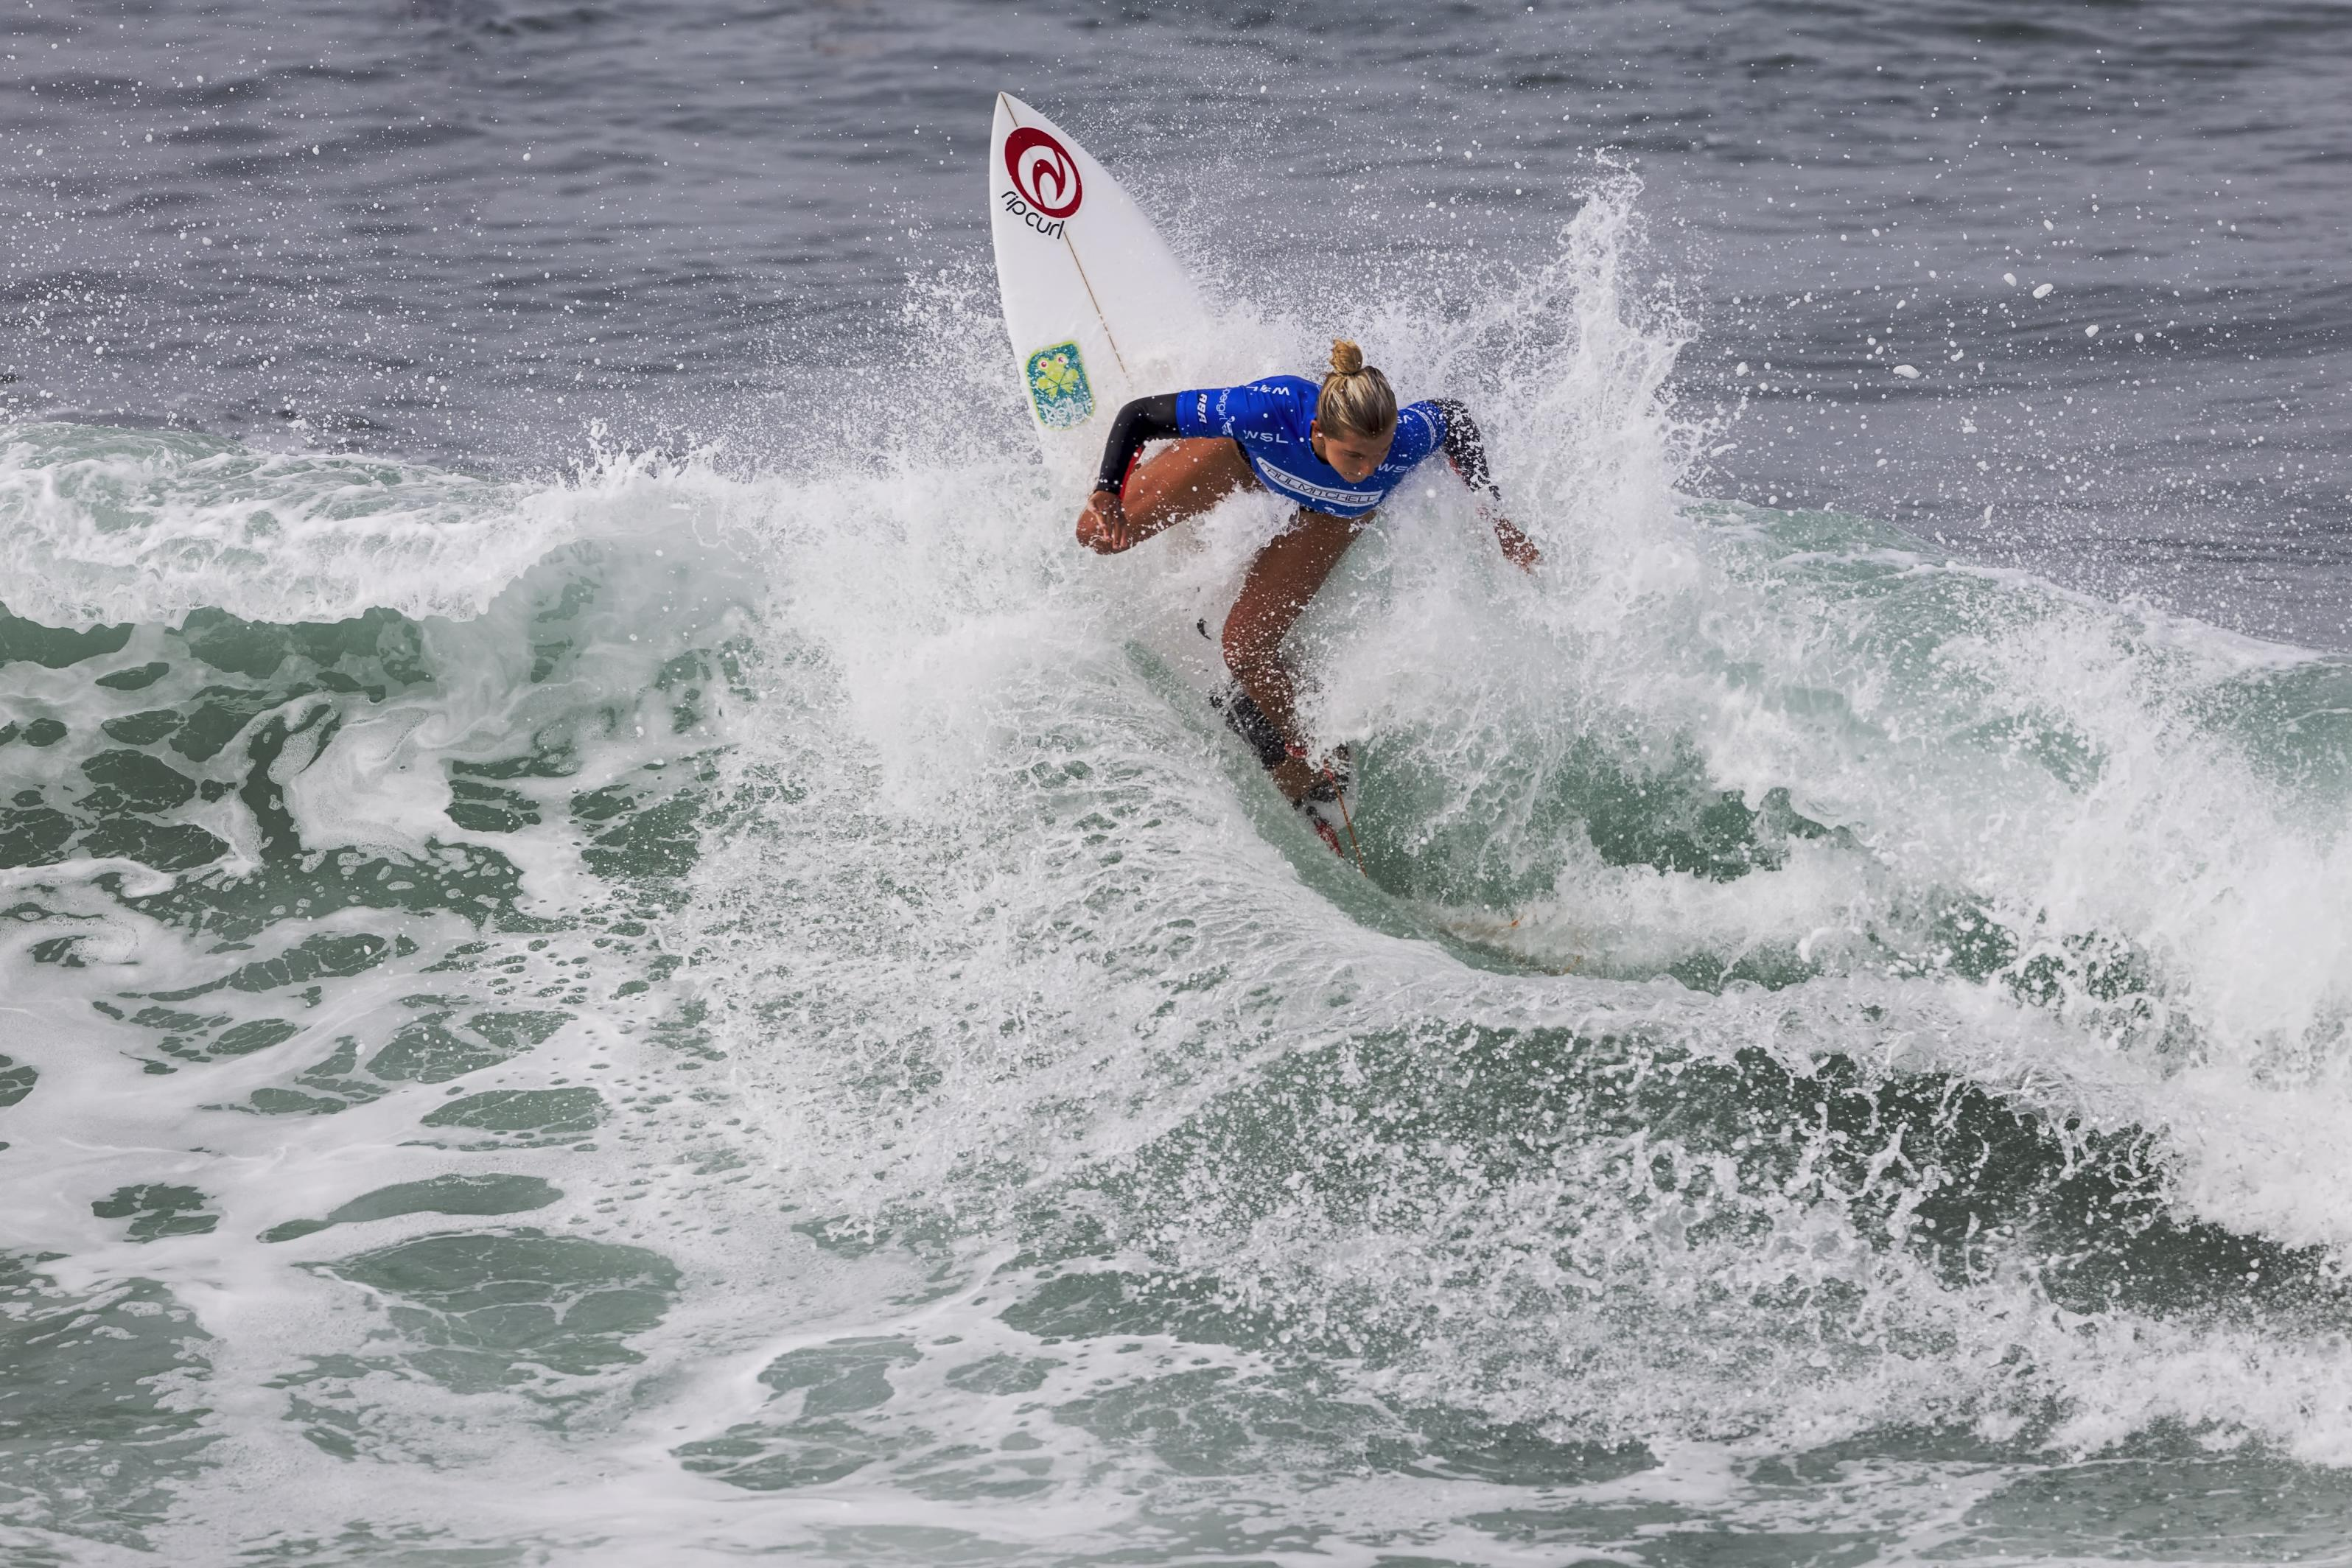 Leilani McGonagle surfs in Round 3, Heat 12 during the Paul Mitchell Supergirl Pro in Oceanside. Photo by Bill Reilly